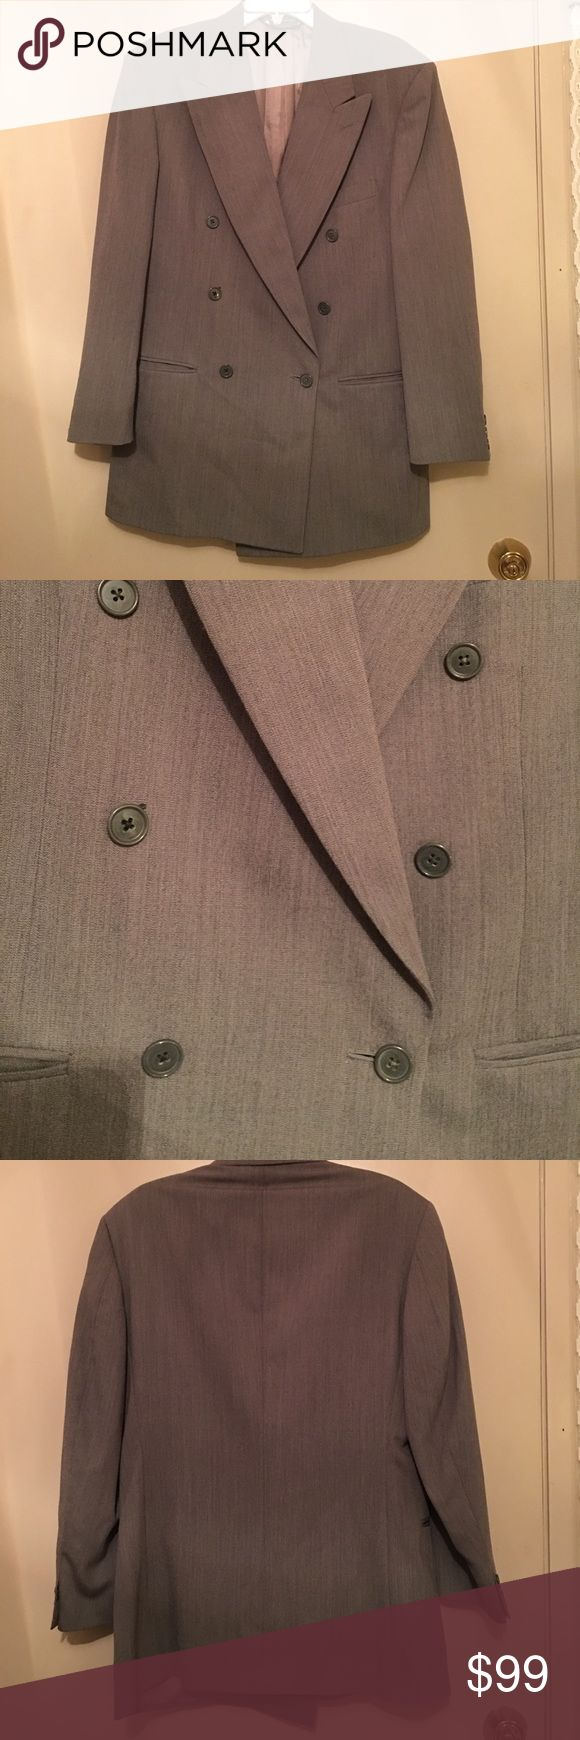 Pierre Cardin Men's Blazer A super nice men's blazer by Pierre Cardin. Size: 39R X 31 W. Material: 100% Worsted Wool. Care: Dry Clean. This Blazer Is In Really Good Condition. Pierre Cardin Suits & Blazers Sport Coats & Blazers